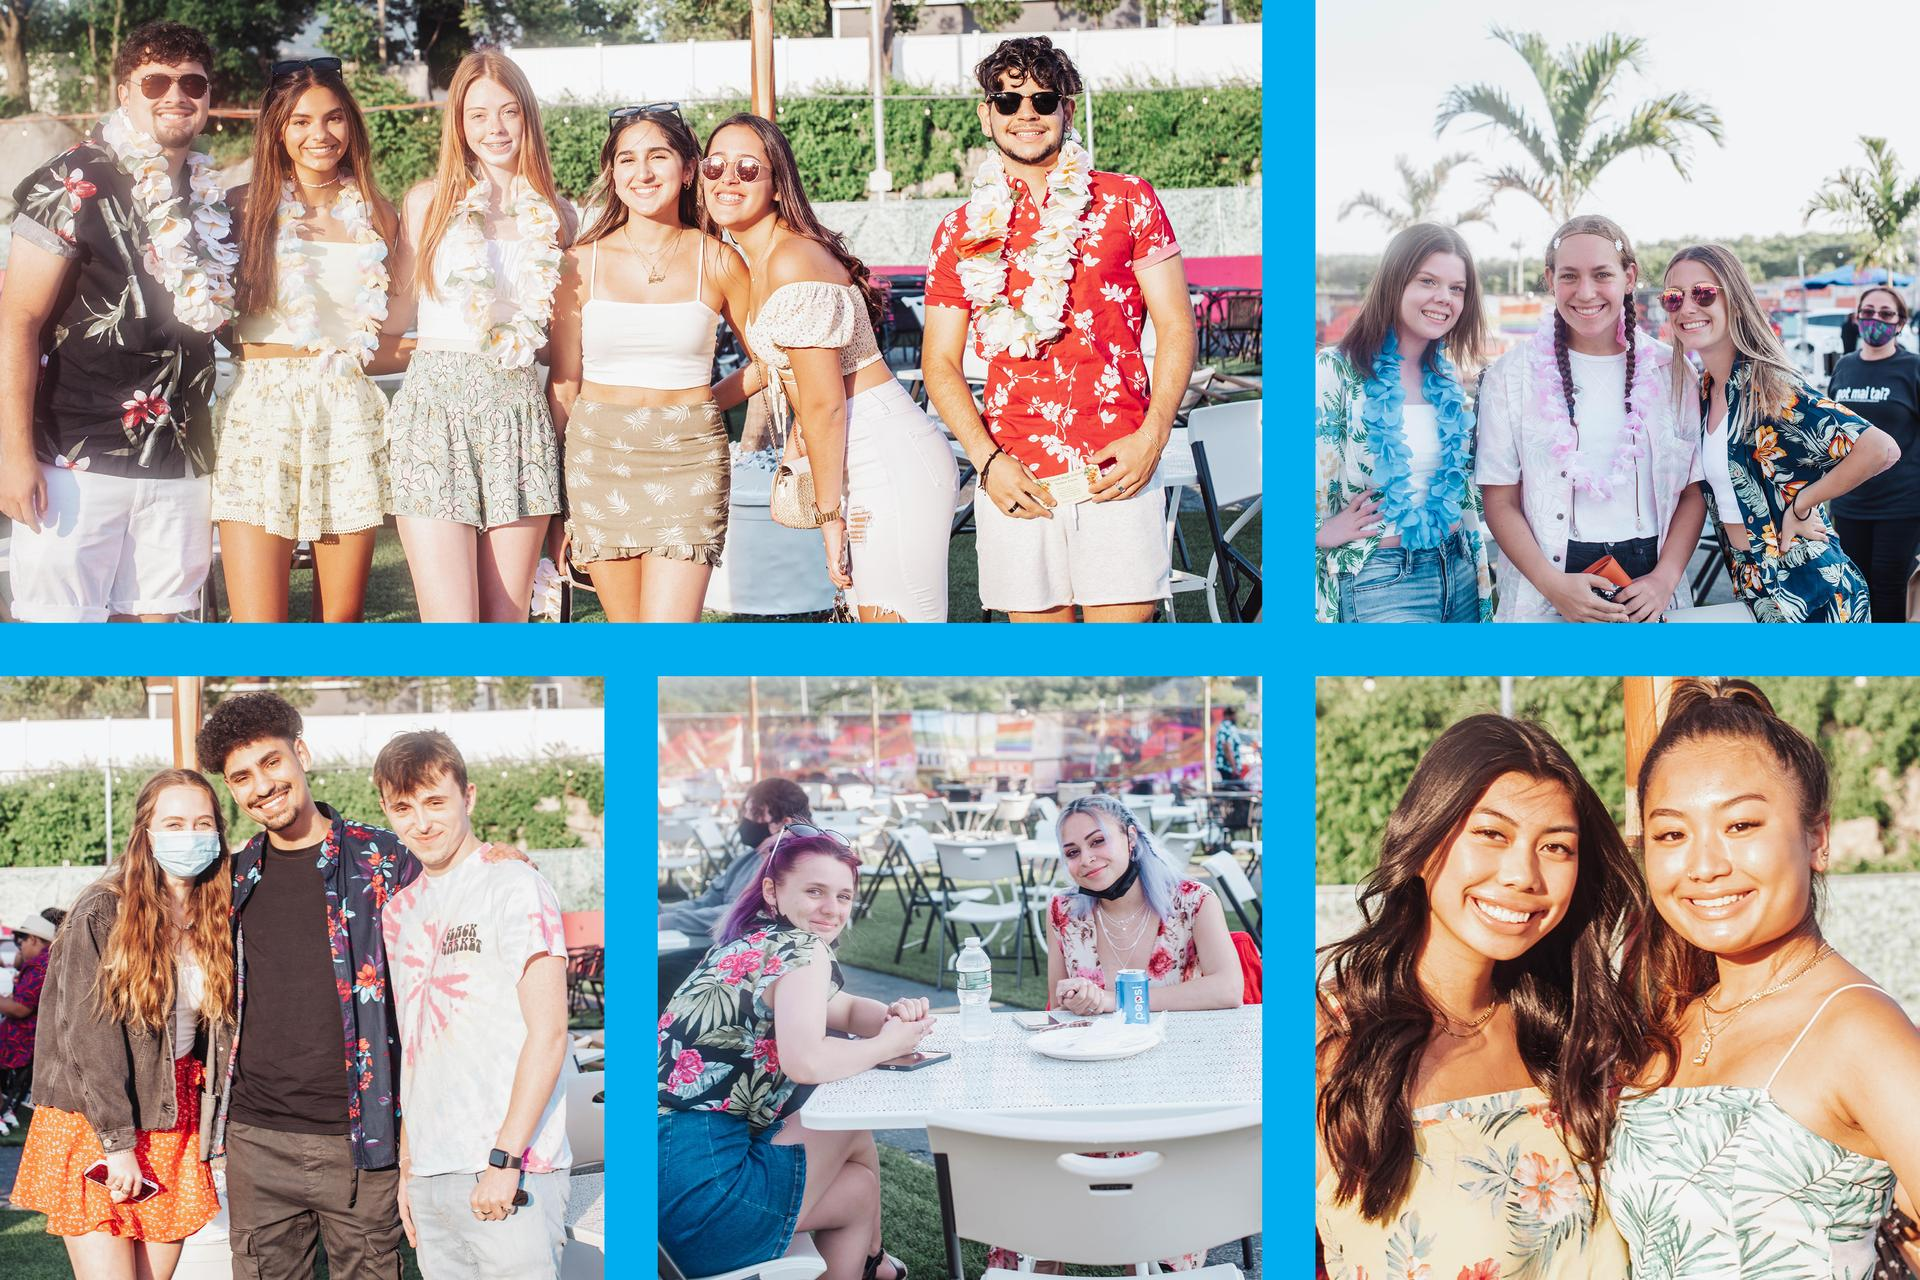 Multi-tile image of EHS students enjoying the luau at the Kowloon Restaurant